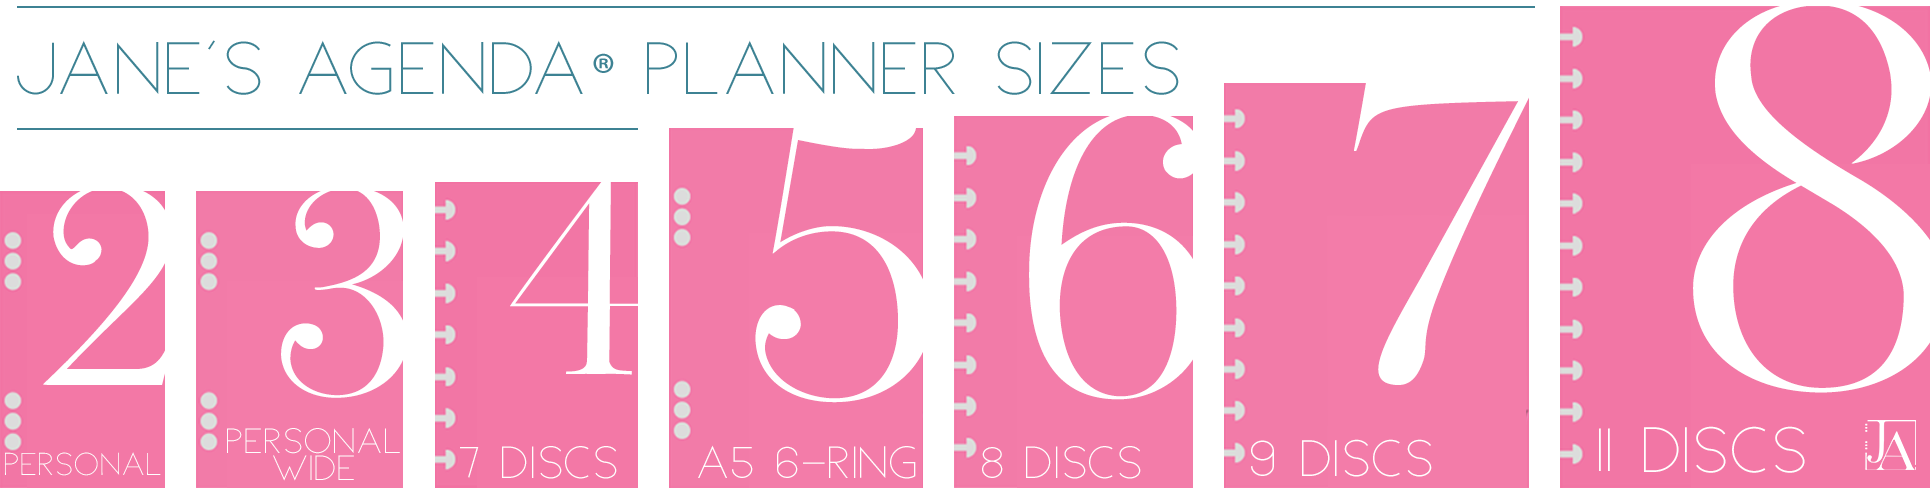 Planner insert size guide for Jane's Agenda discbound and six ring planner products.